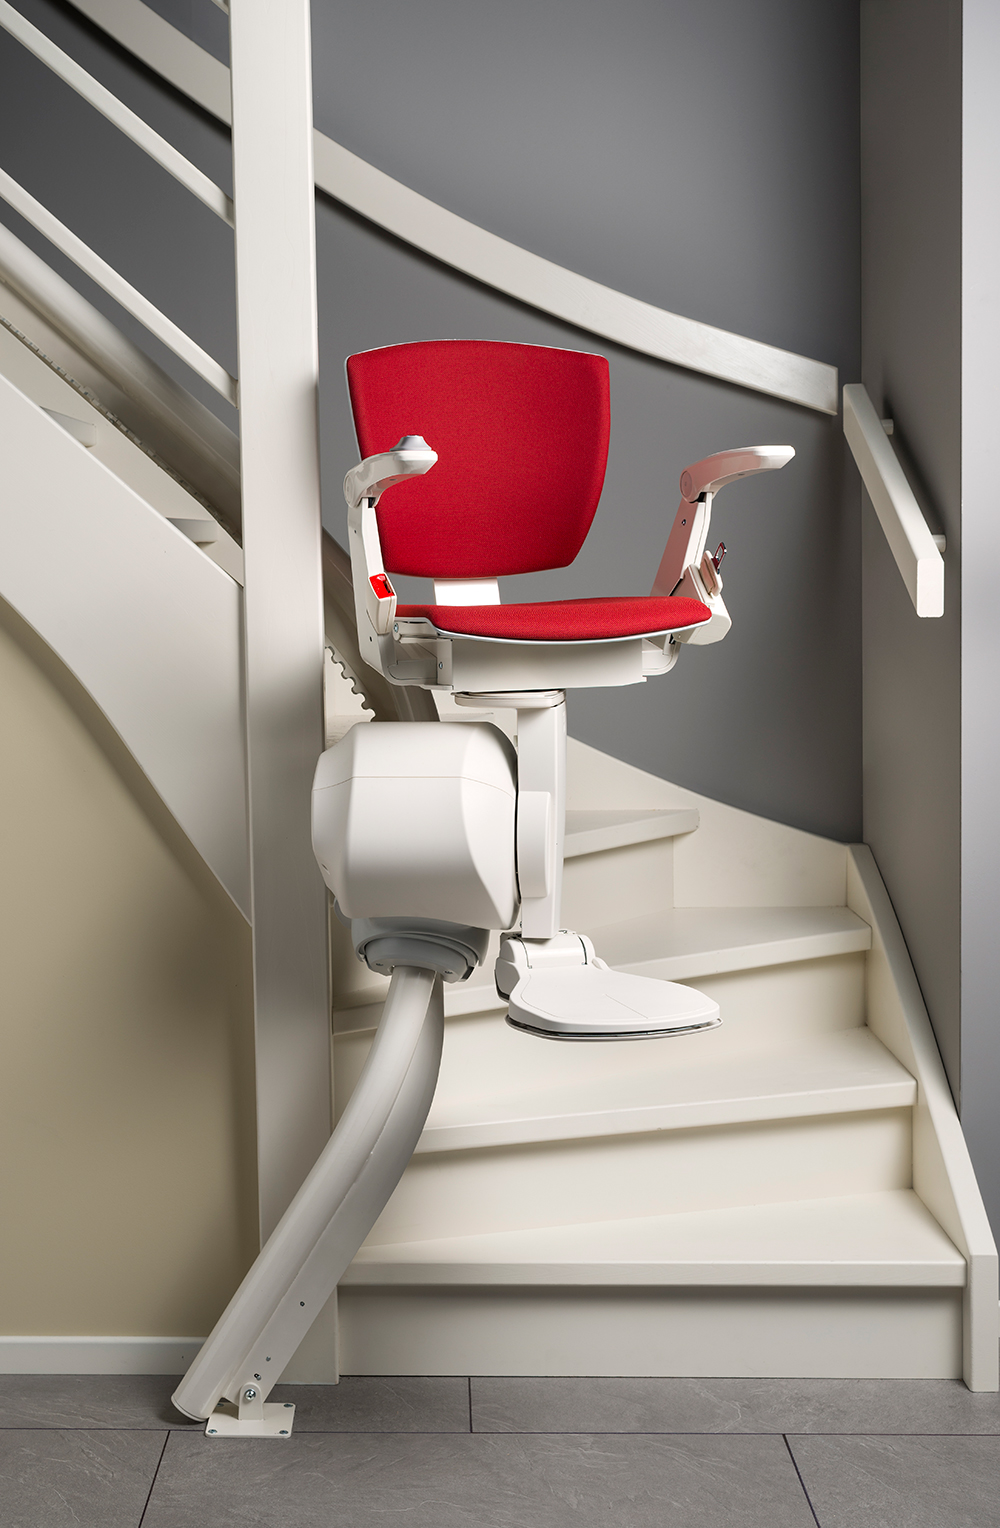 Stairlifts for Narrow Stairs Ireland